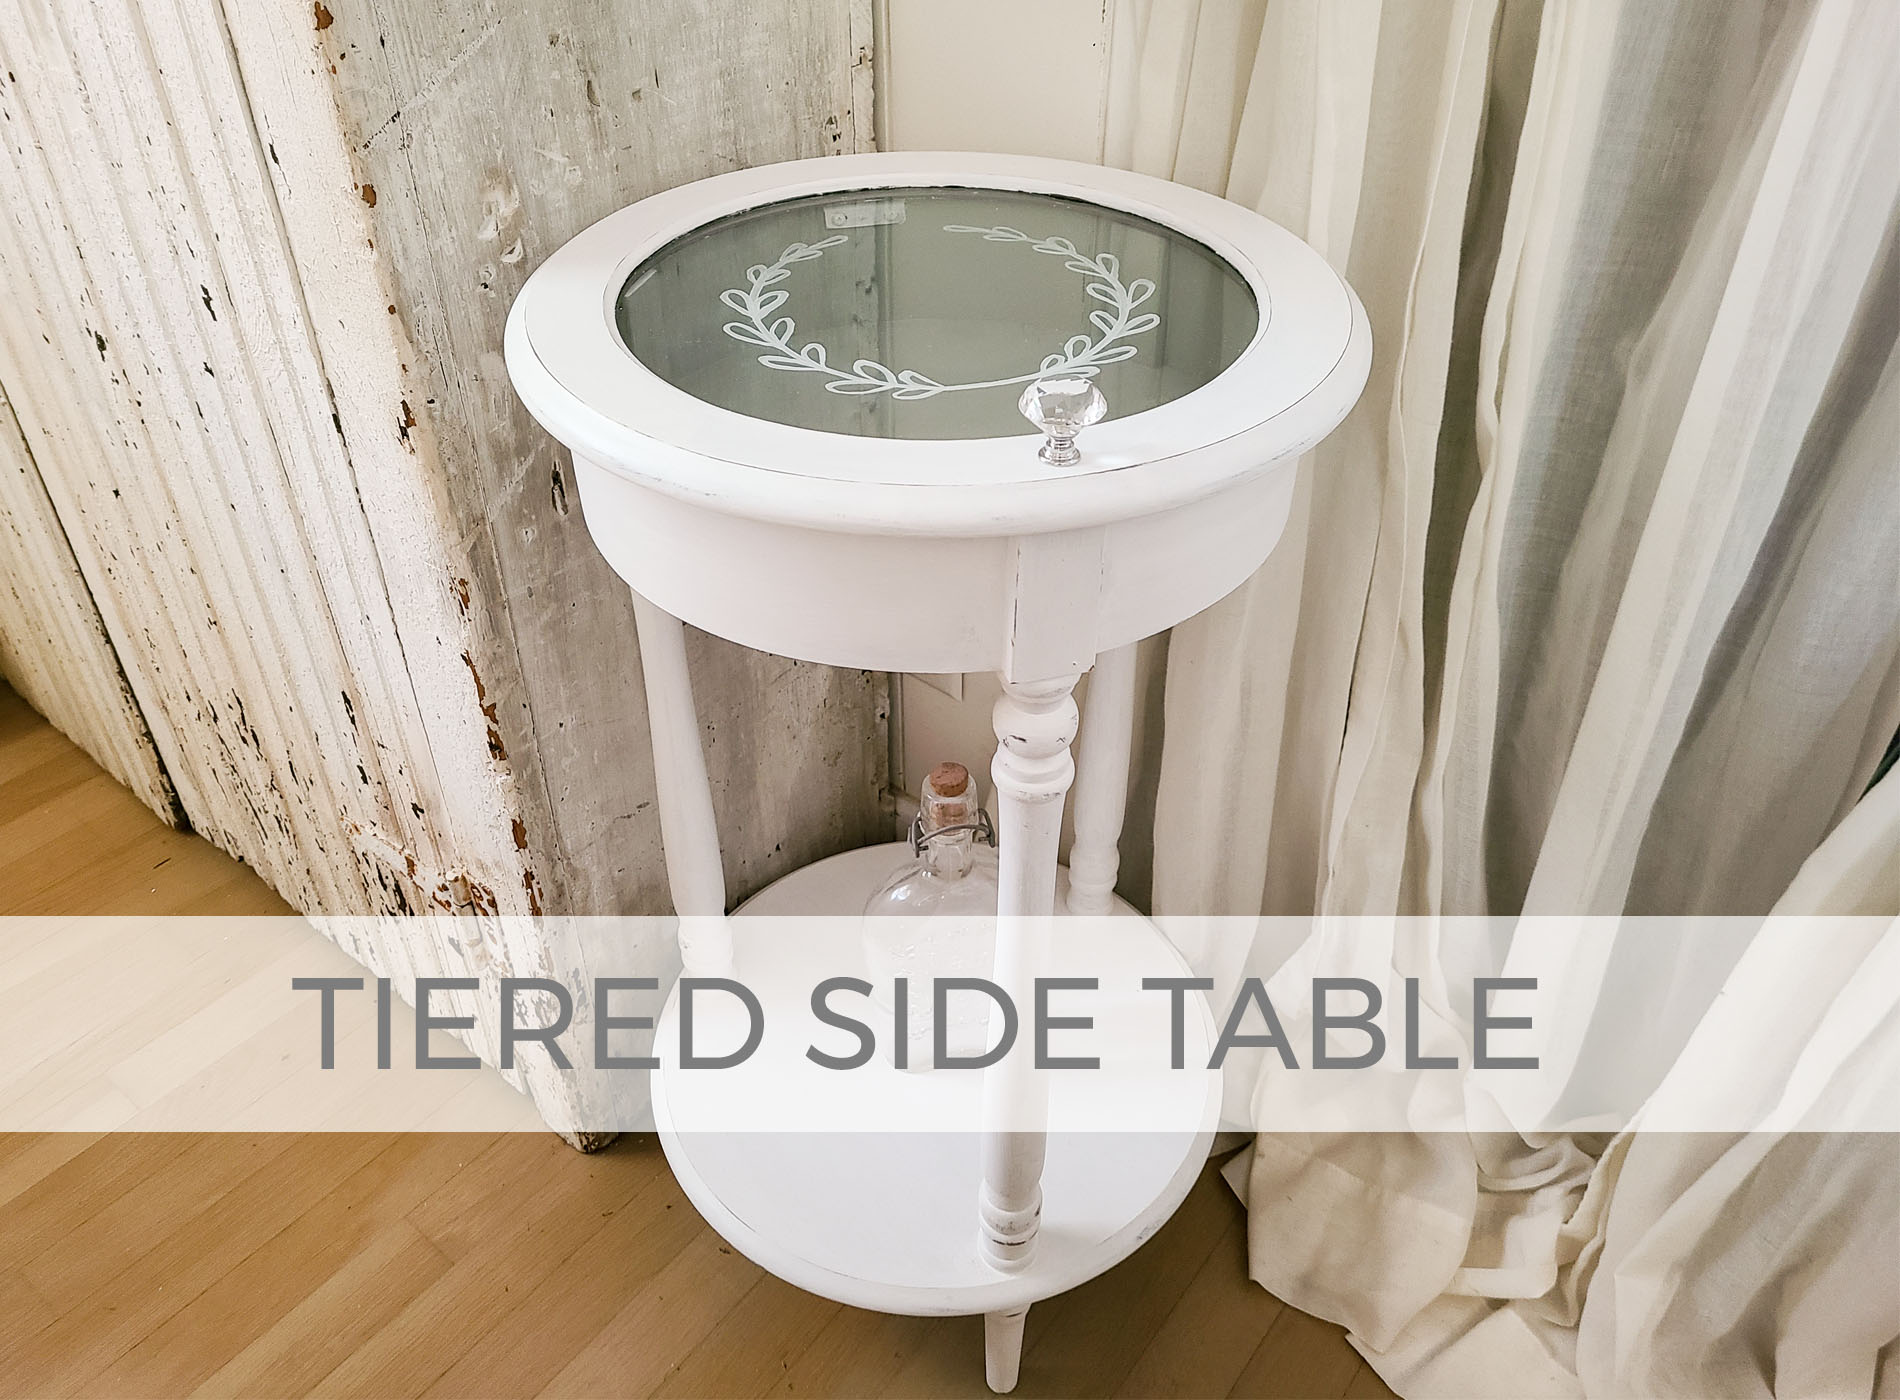 Tiered Side Table with Glass Cabinet by Larissa of Prodigal Pieces | prodigalpieces.com #prodigalpieces